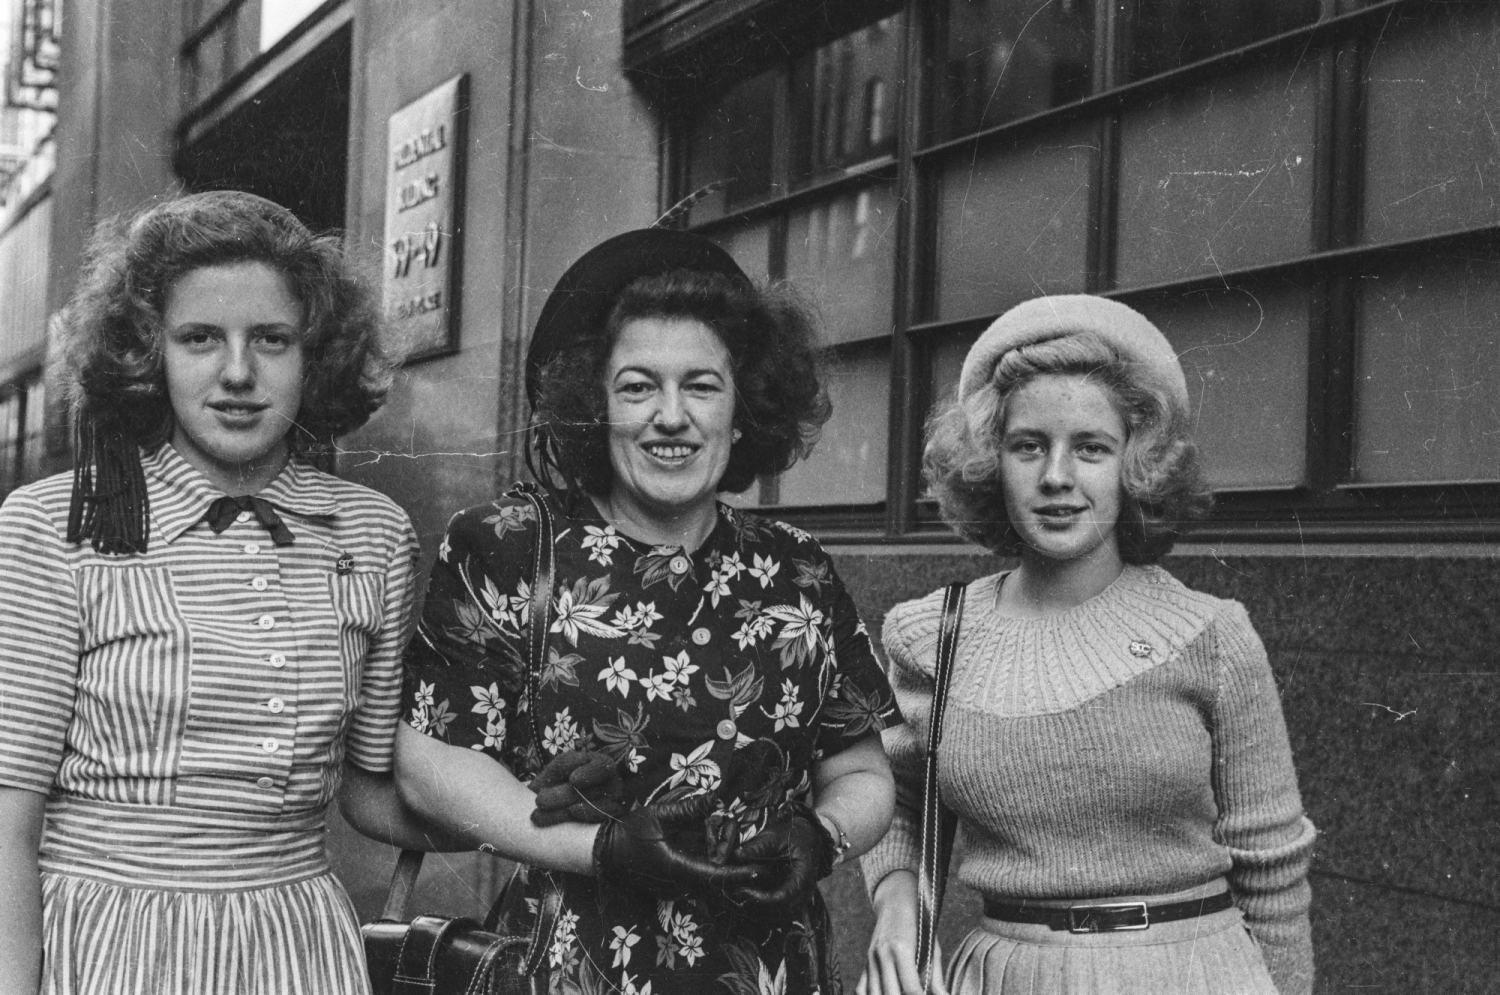 Black and white street photograph of three women linking arms walking down the street.